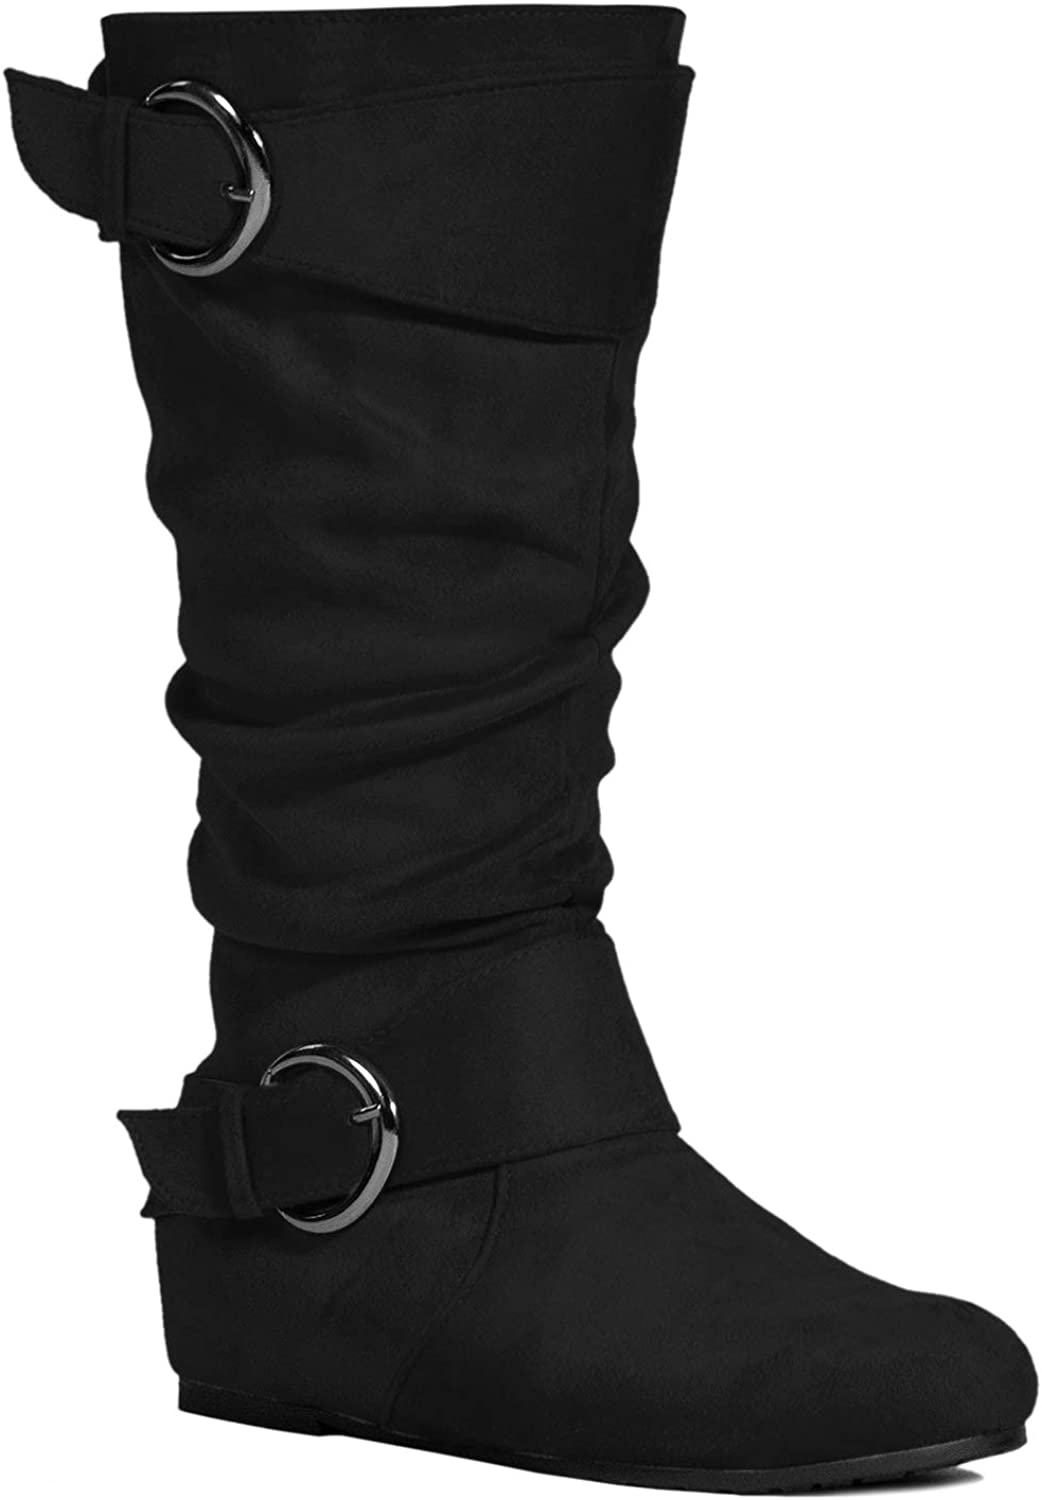 Unm Womens Over The Knee Stiletto High Heel Boots